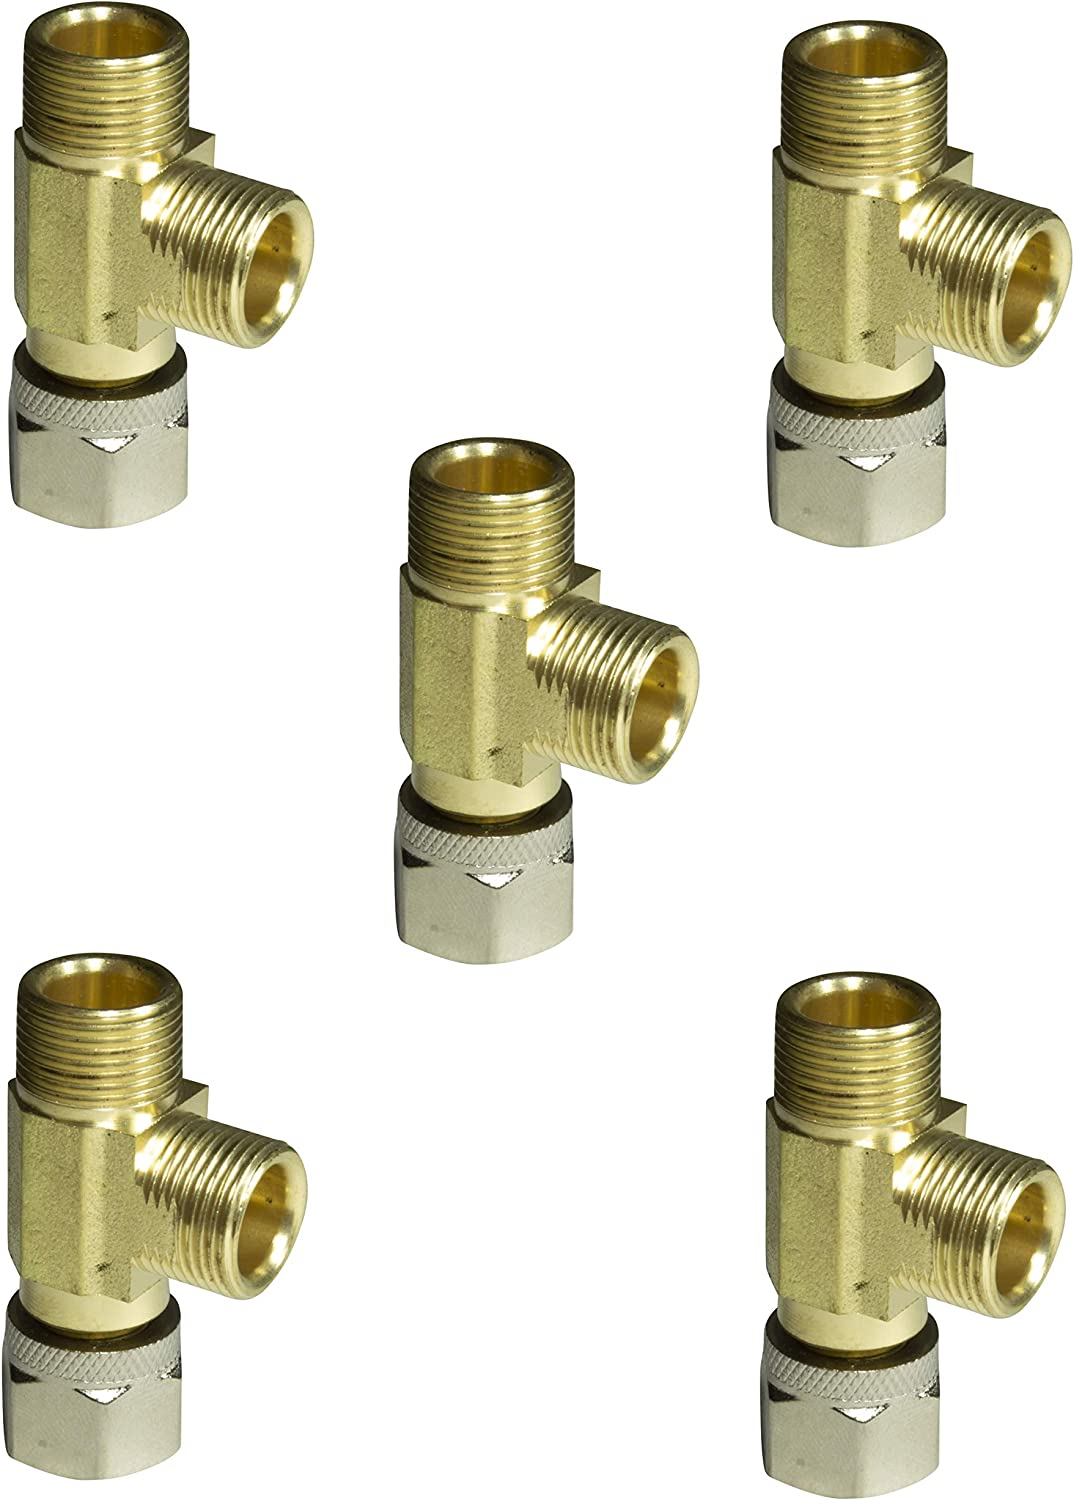 "Lead Free Brass Angle Stop Add-A-Tee Valve 3/8"" Compression Inlet x 3/8"" Outlet x 3/8"" Outlet Leak Proof Easy Connect Tee (5 Pack)"